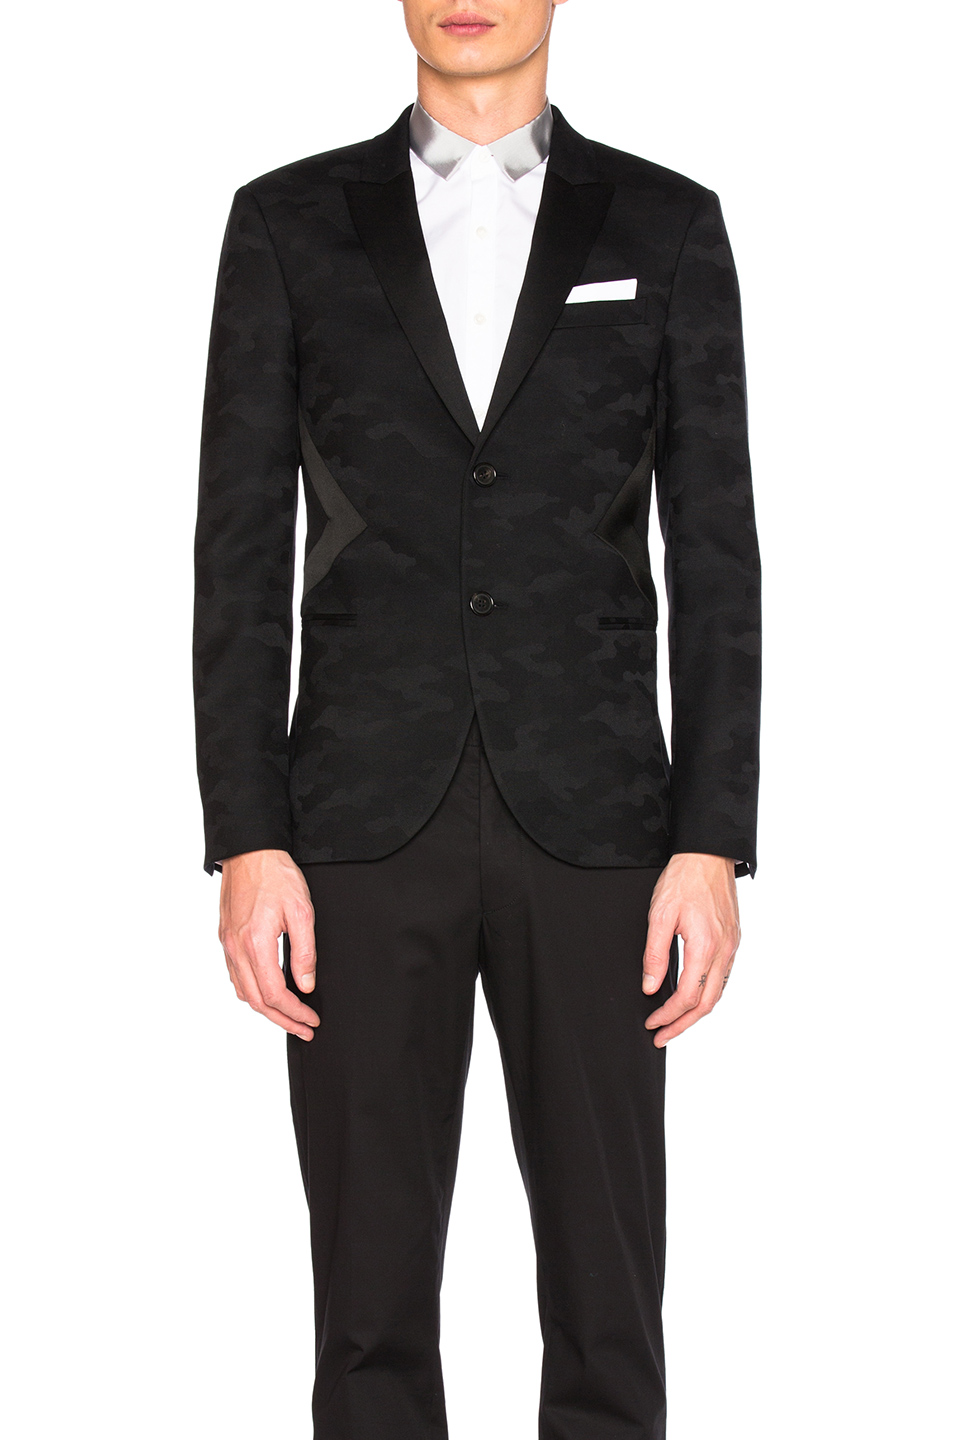 Neil Barrett Modernist Tuxedo Jacket in Black,Abstract